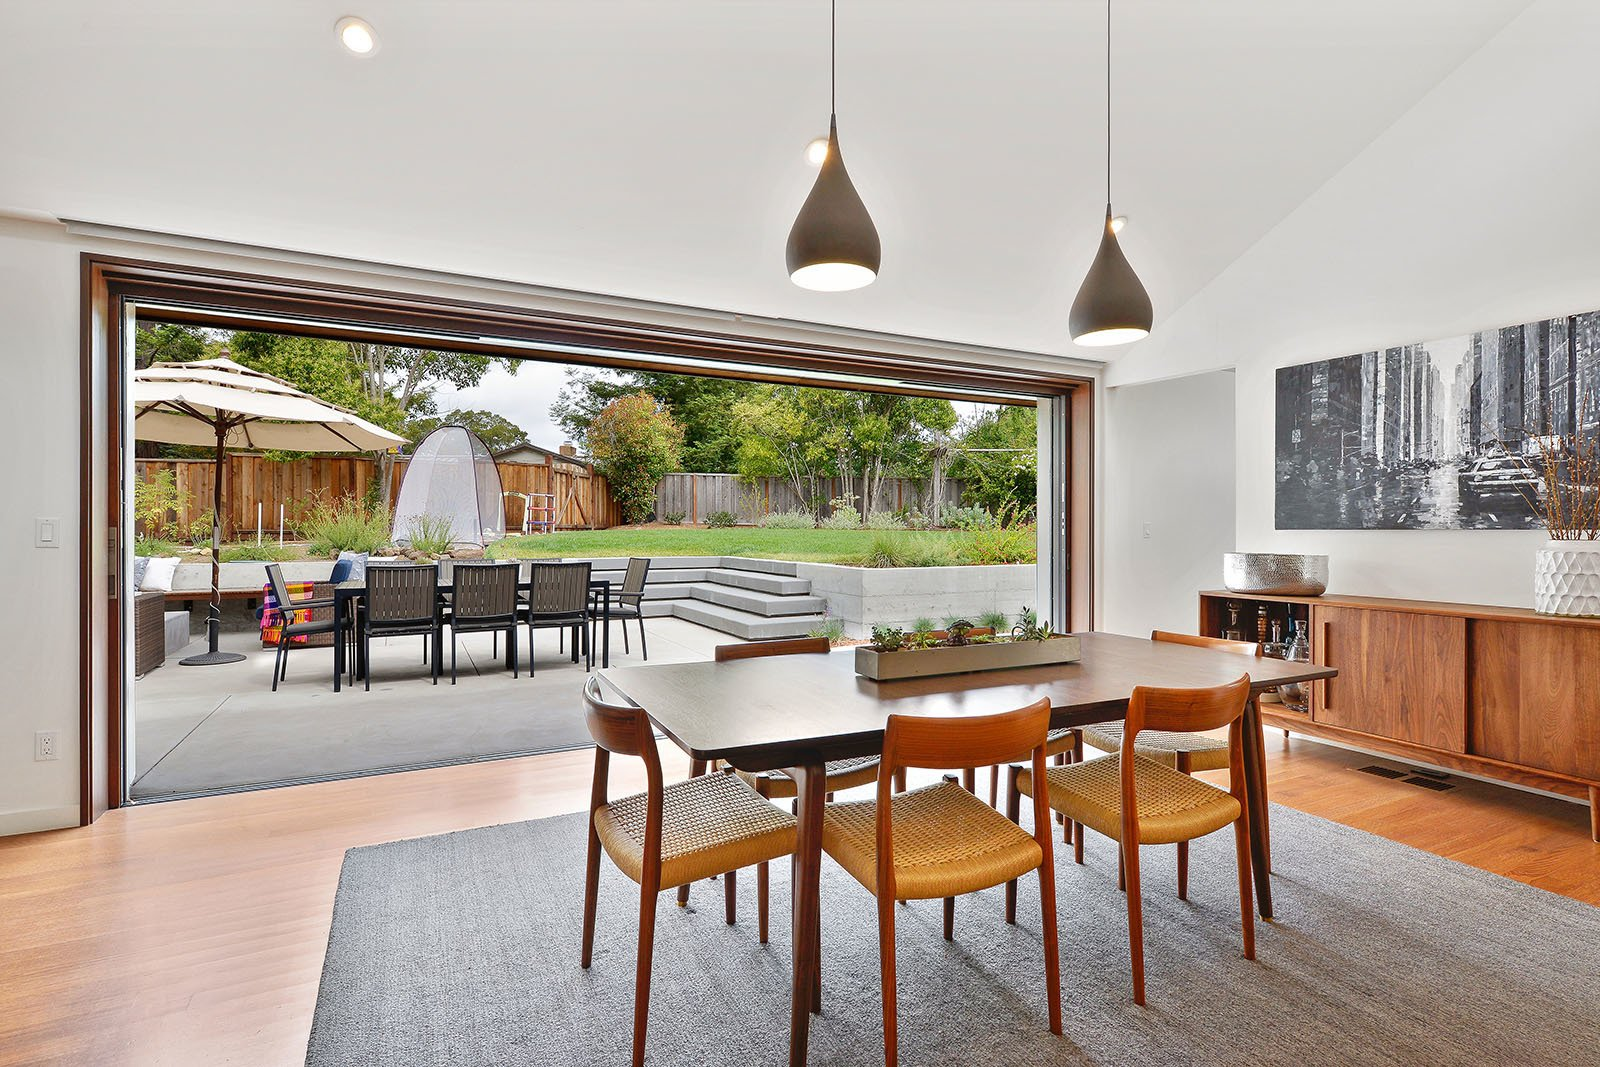 Dining room Tagged: Dining Room, Chair, Pendant Lighting, Table, and Medium Hardwood Floor.  Portola Valley by patrick perez/designpad architecture